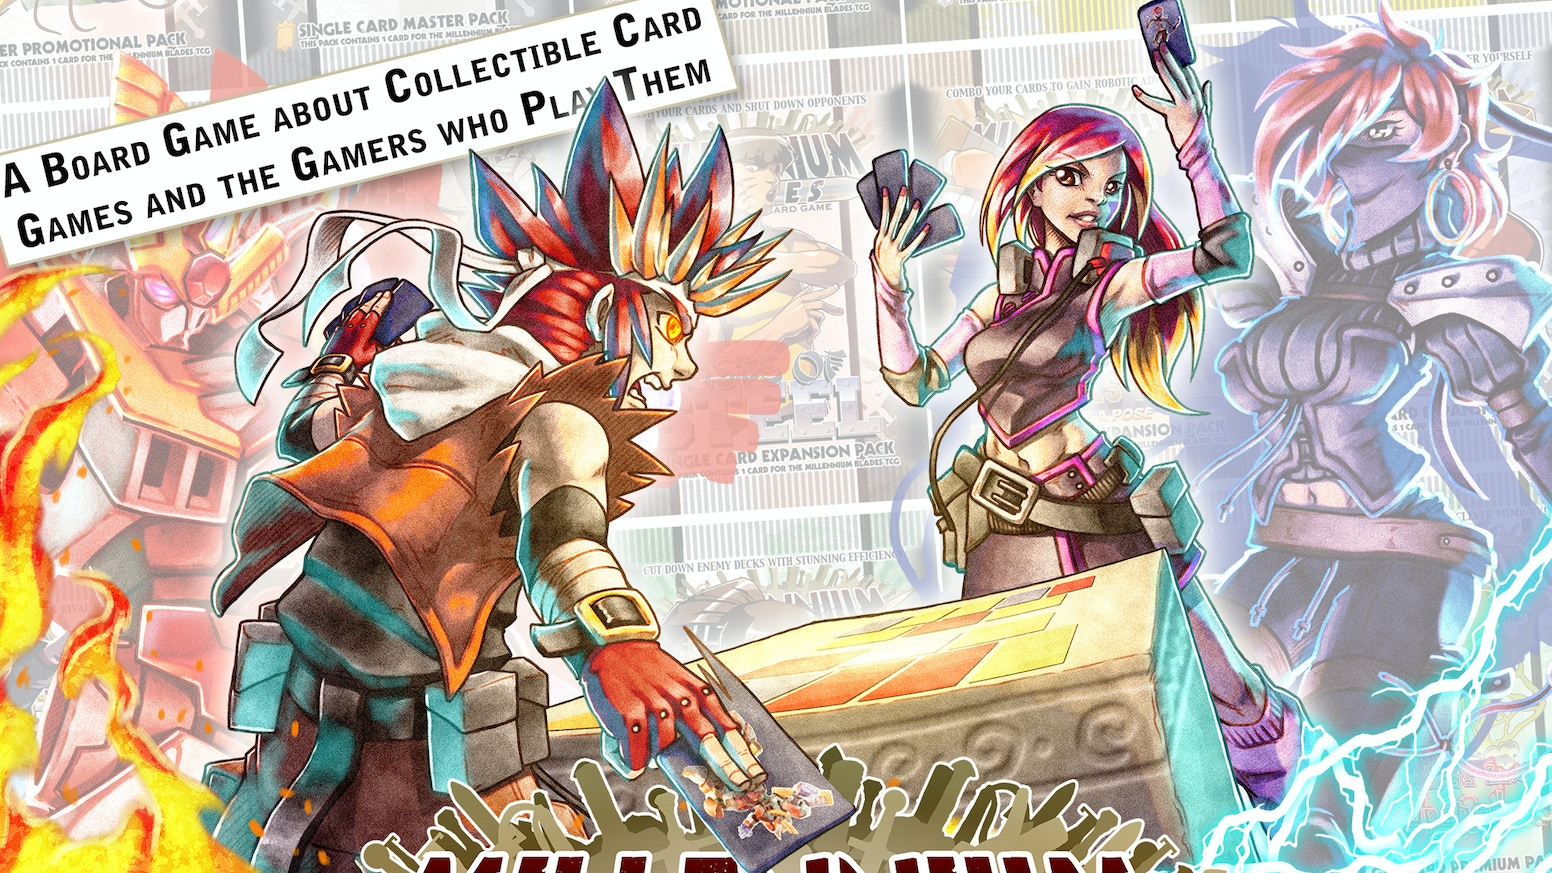 Millennium Blades is a Board Game about a group of friends who play a Collectible Card Game called Millennium Blades.